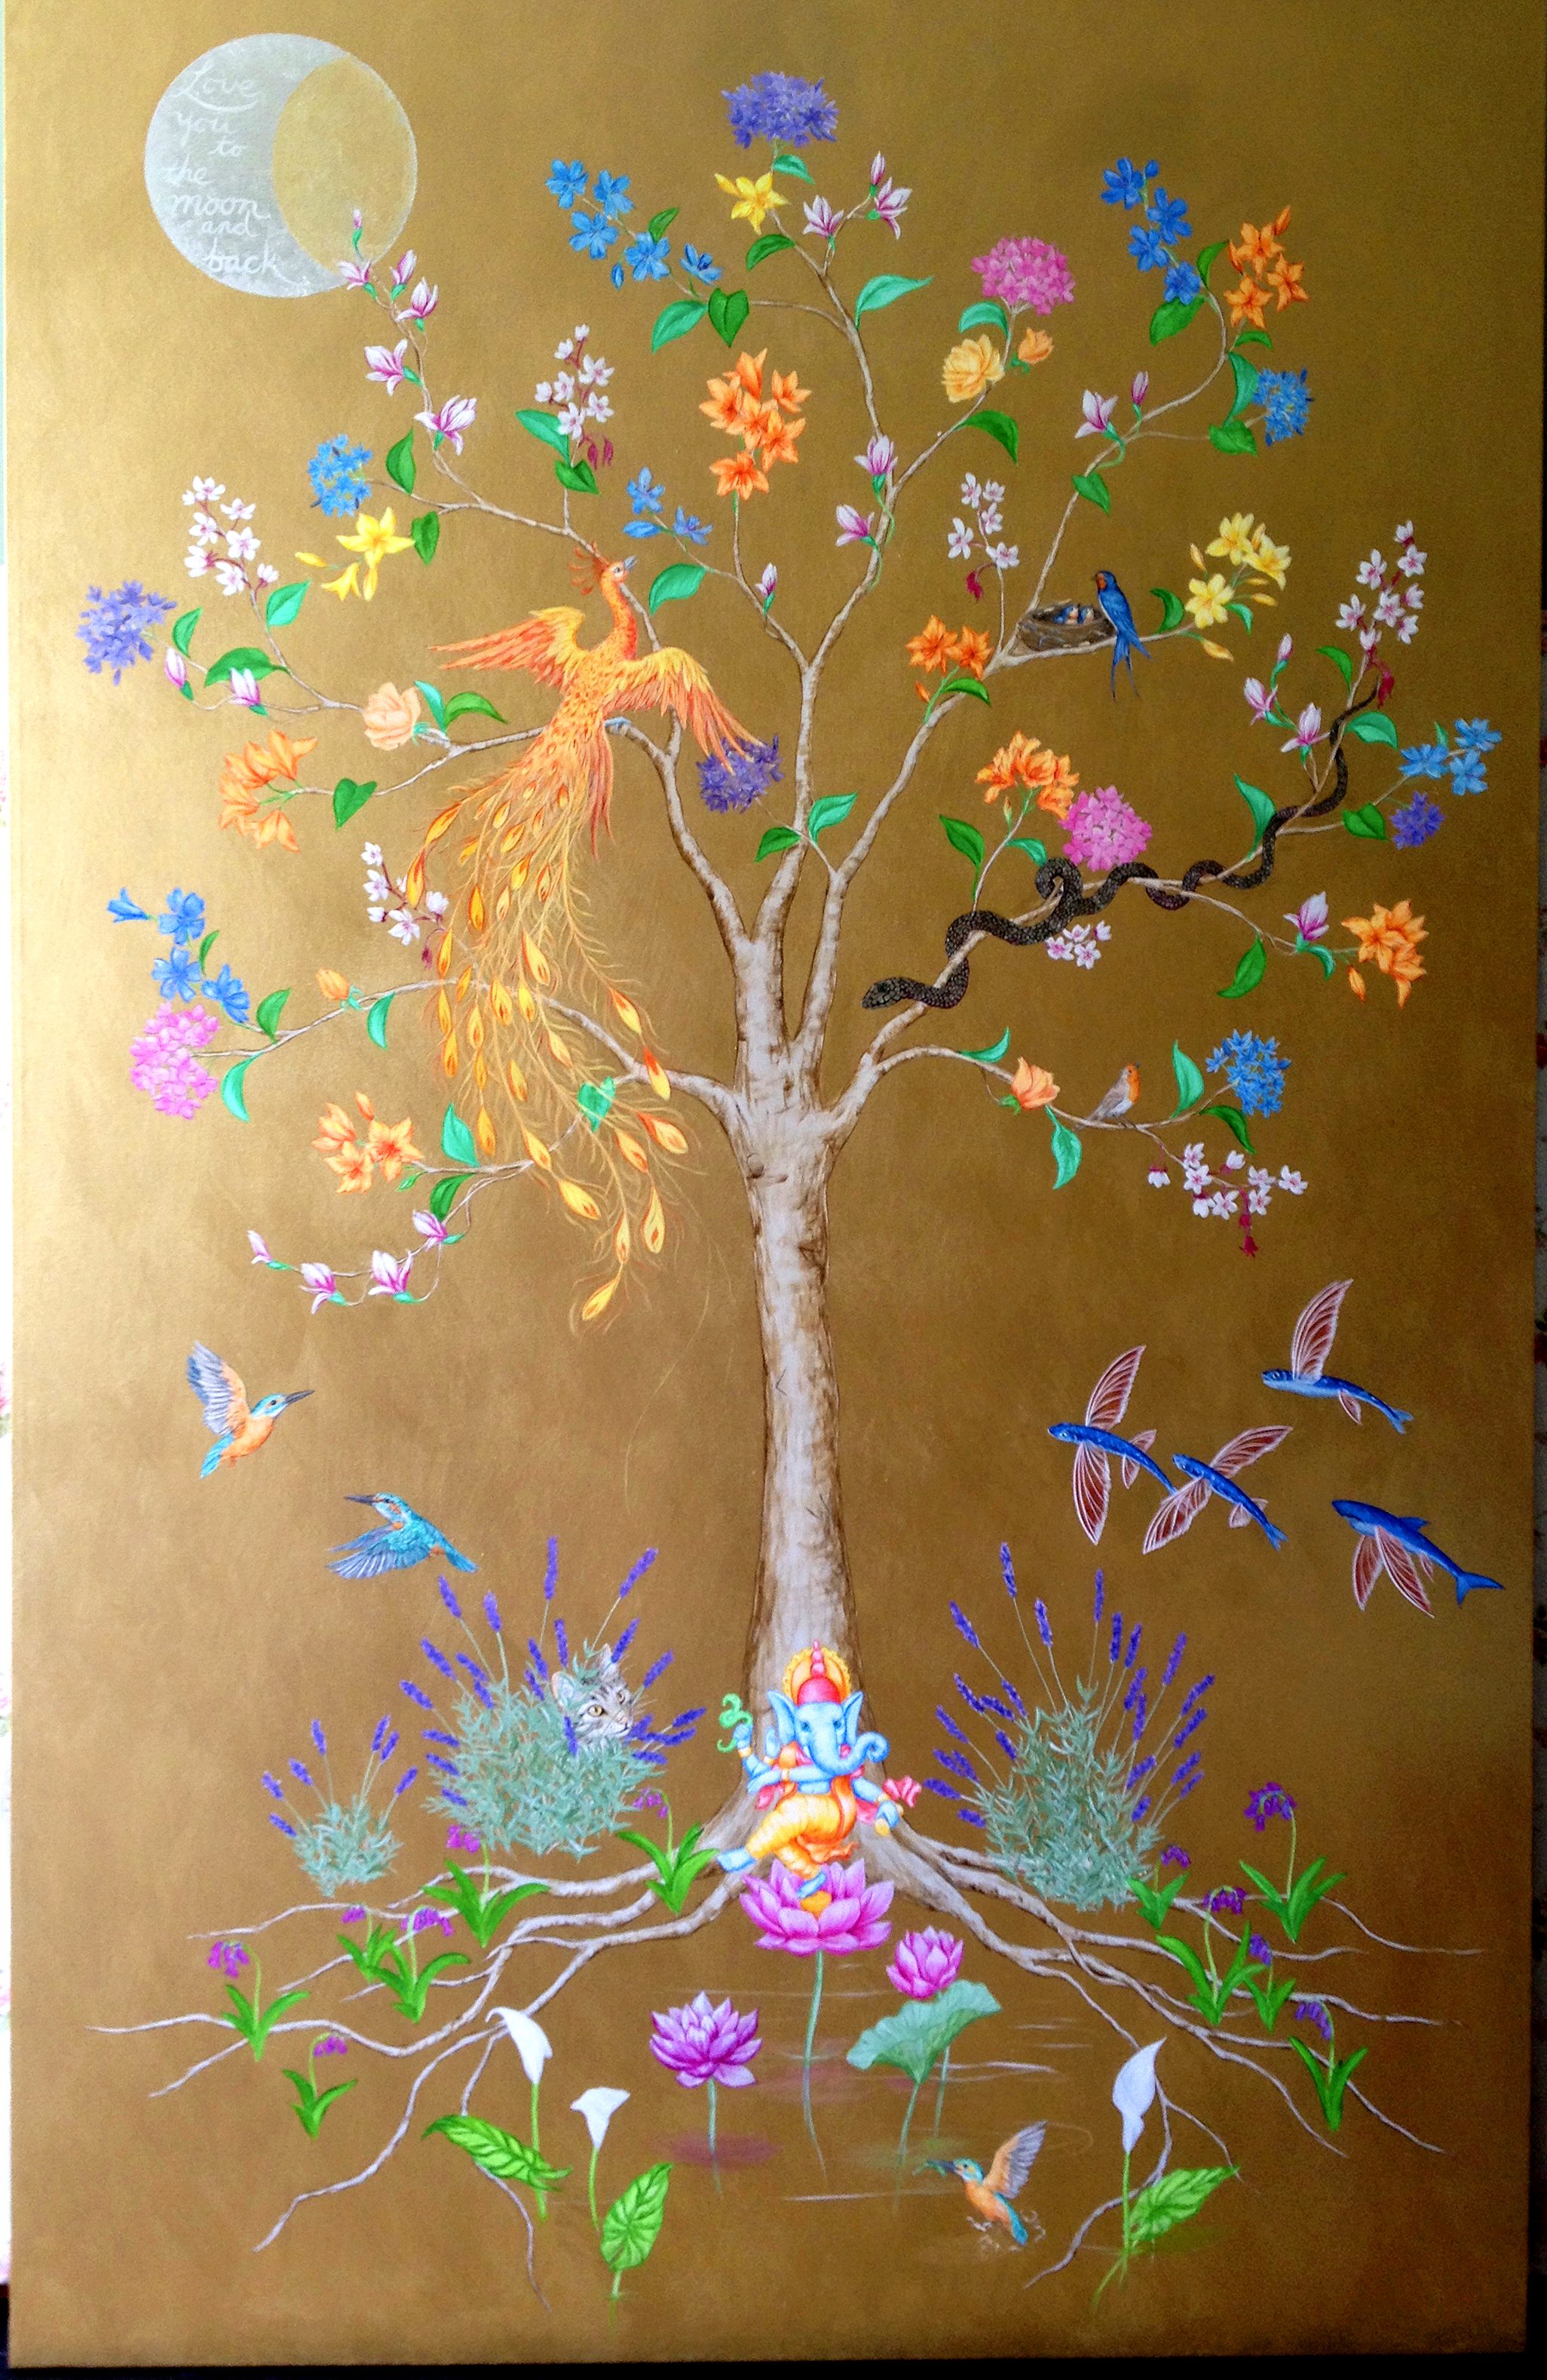 frederick wimsett - tree of life - murals artistic design- other projects.jpeg